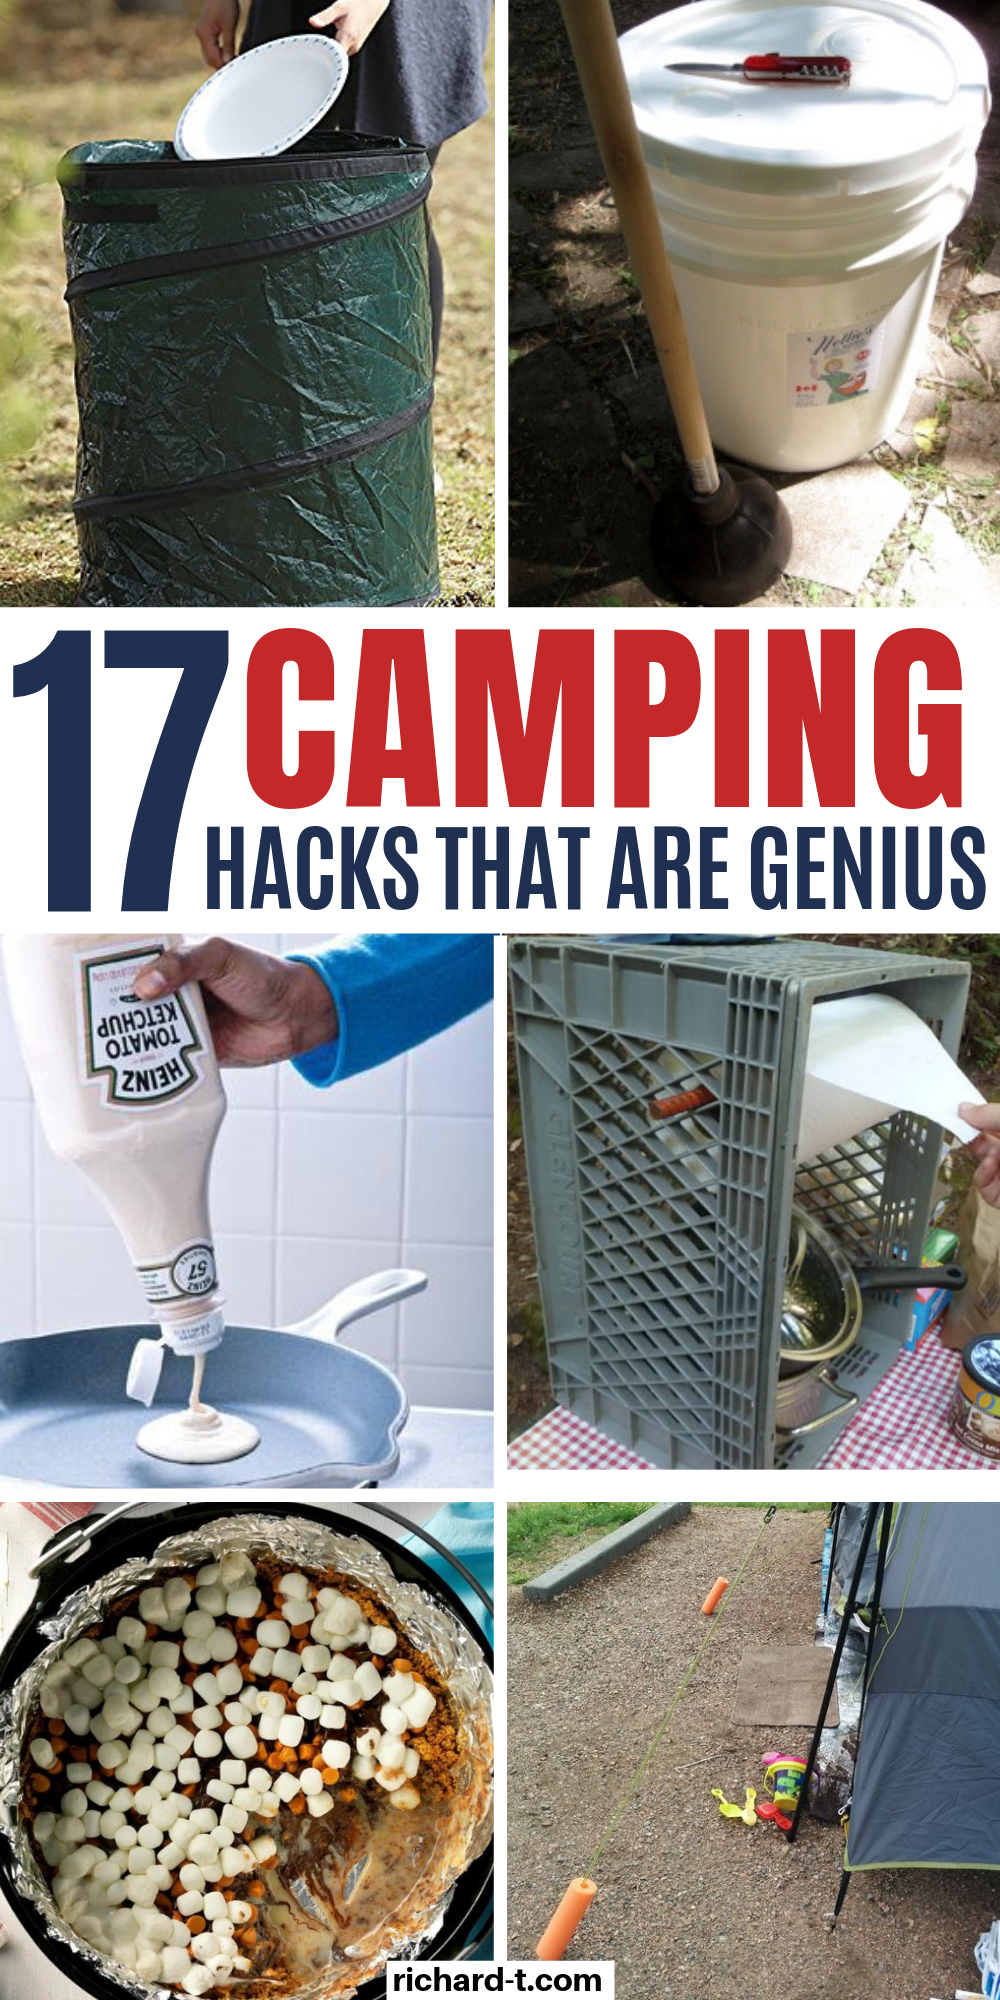 Check out these GENIUS camping hacks that every camper should use! These 17 camping hacks are so cl